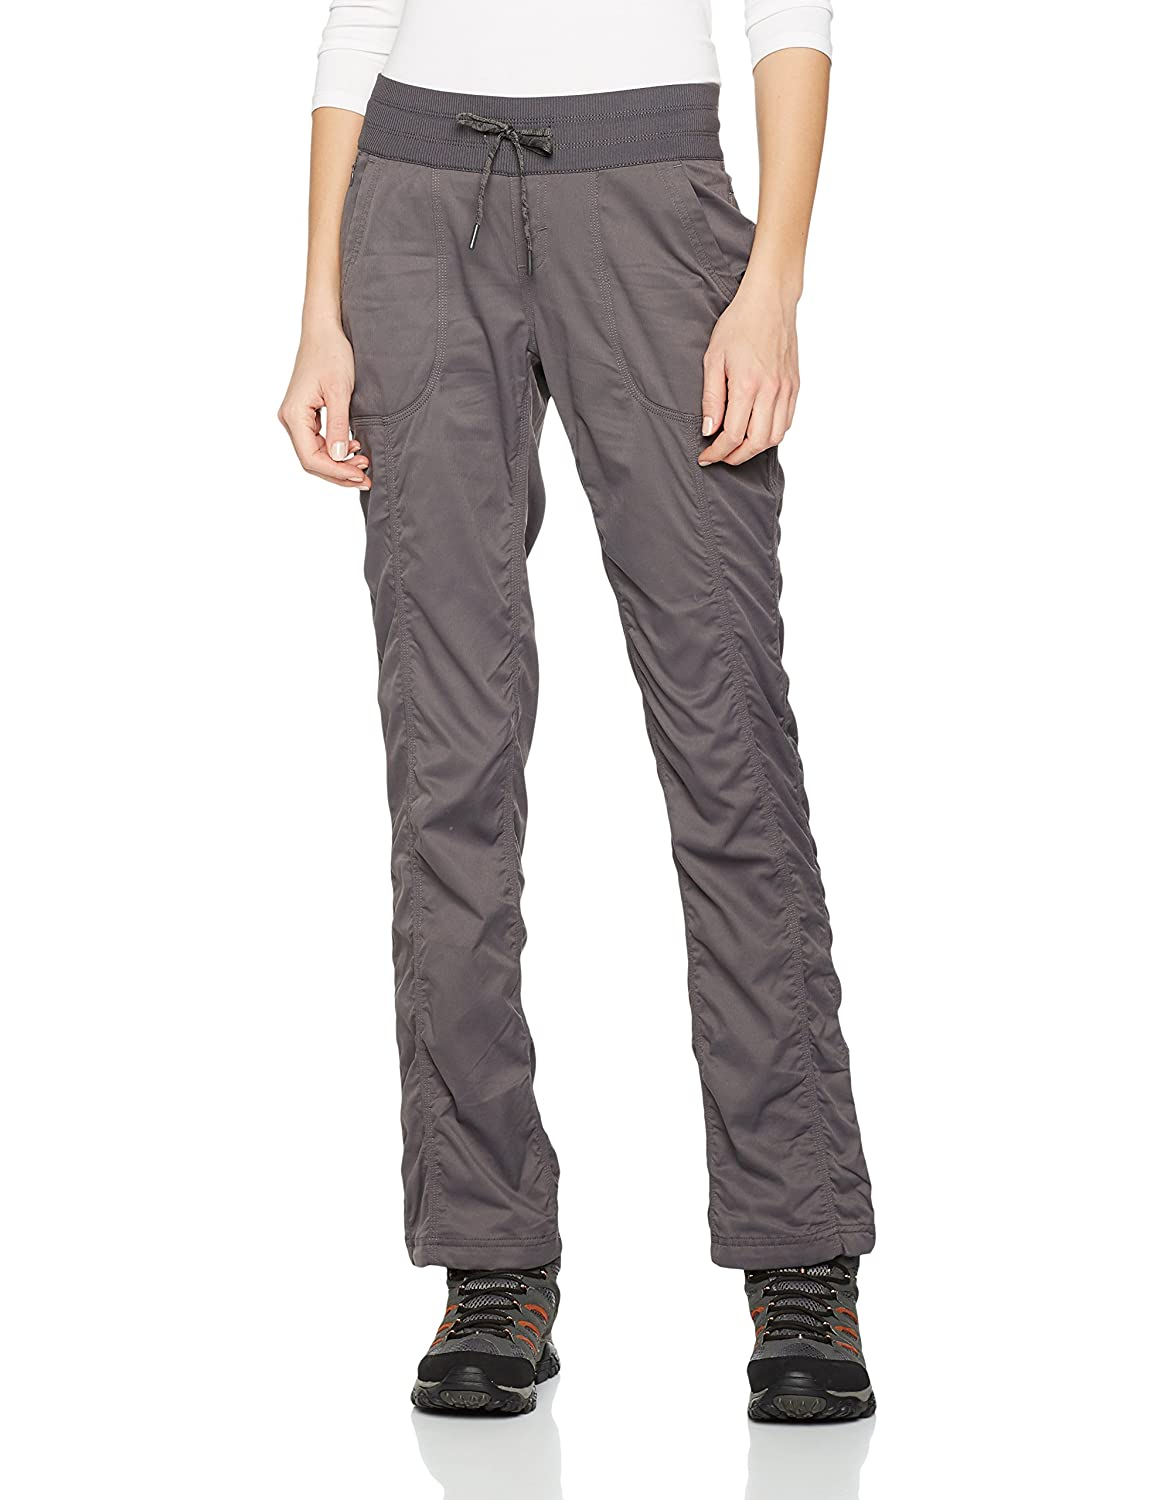 Graphite Grey Large The North Face Women's